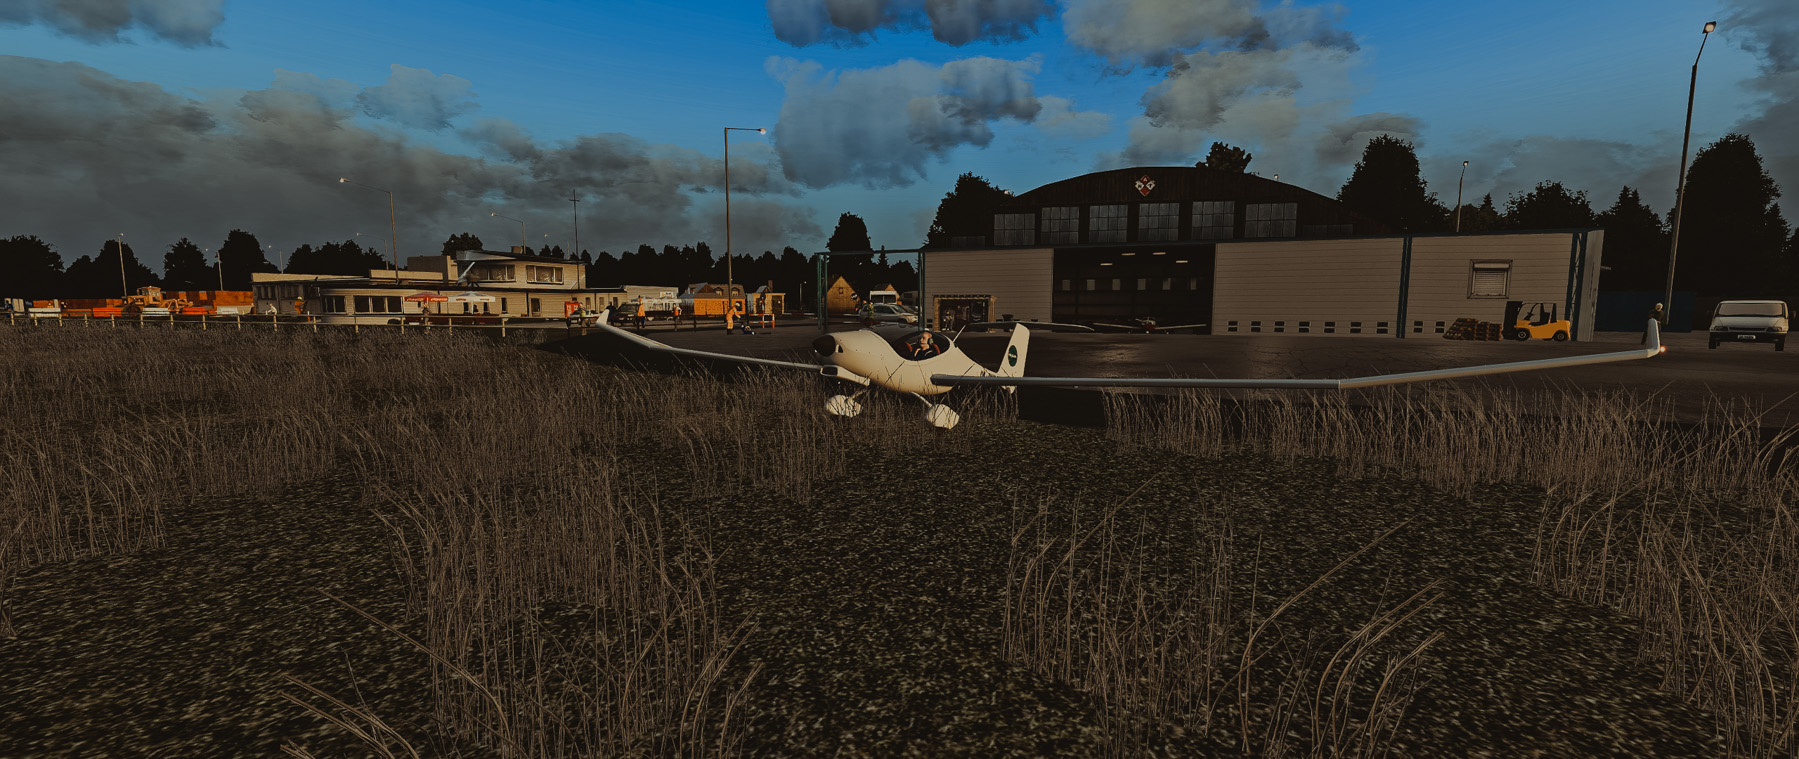 POLAND PHOTO SCENERY -  EPNT NOWY TARG X-PLANE 11